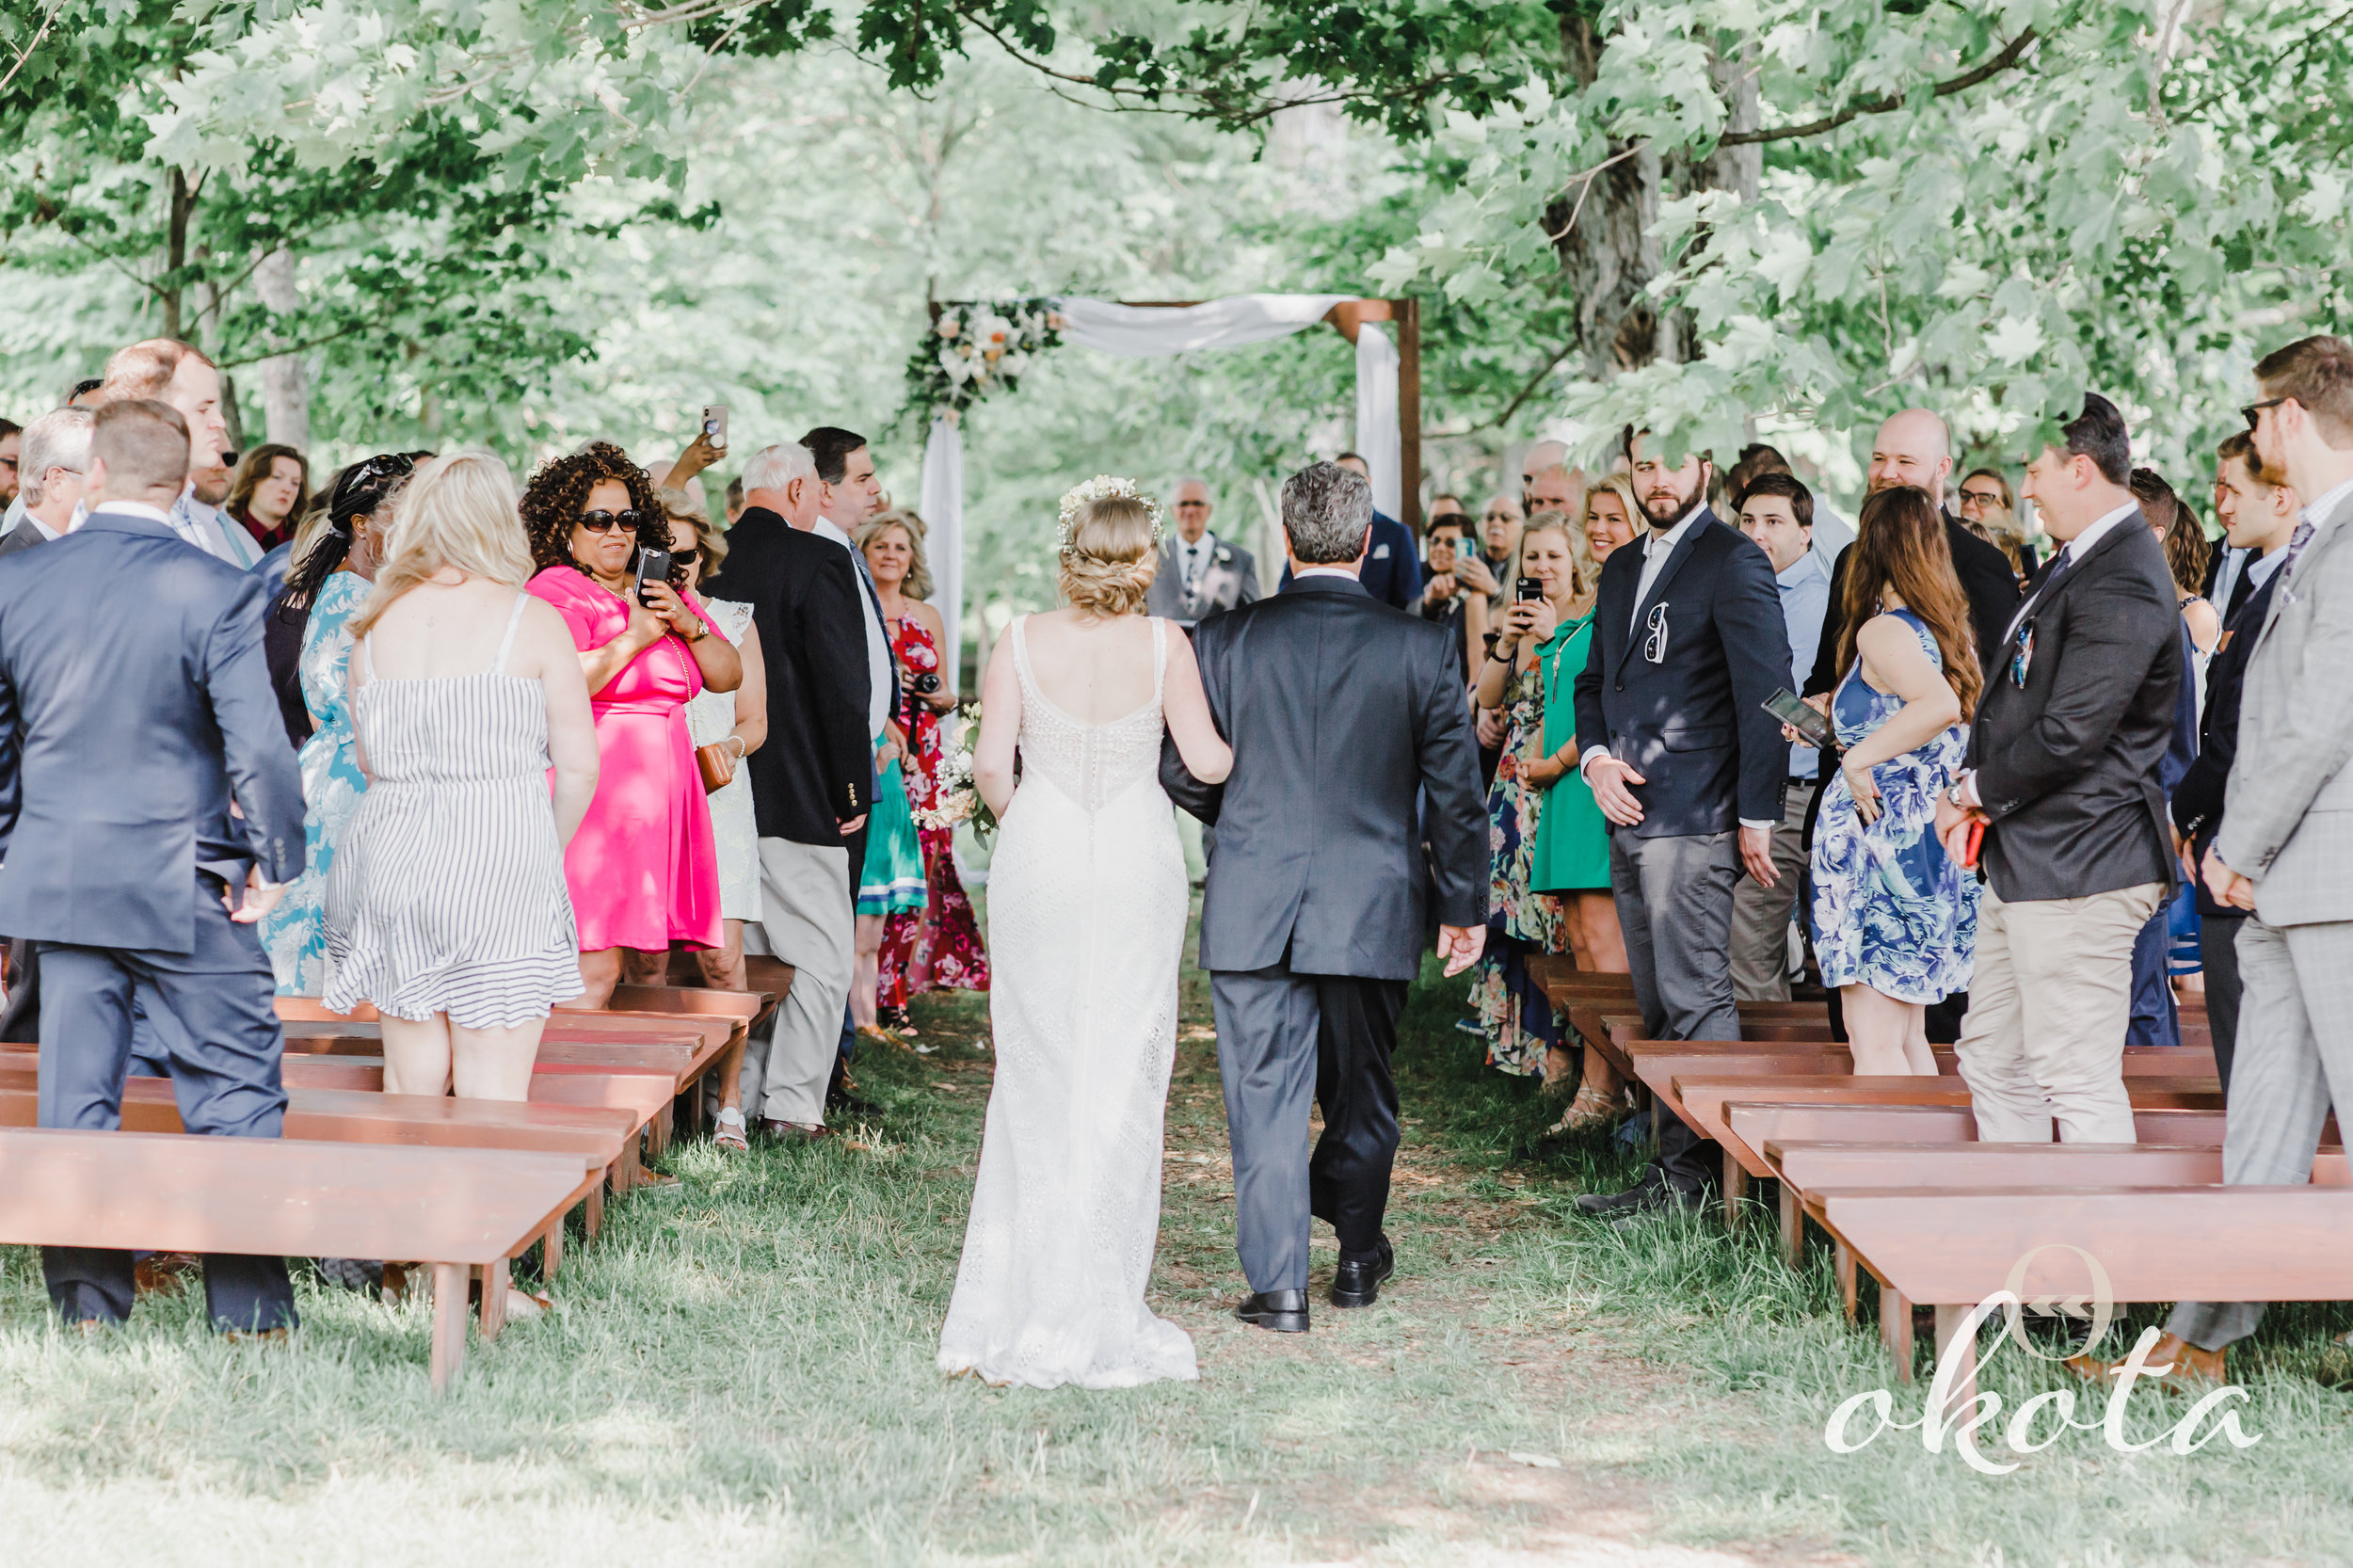 OKOTA_PuperiWedding_WATERMARKED-431.jpg